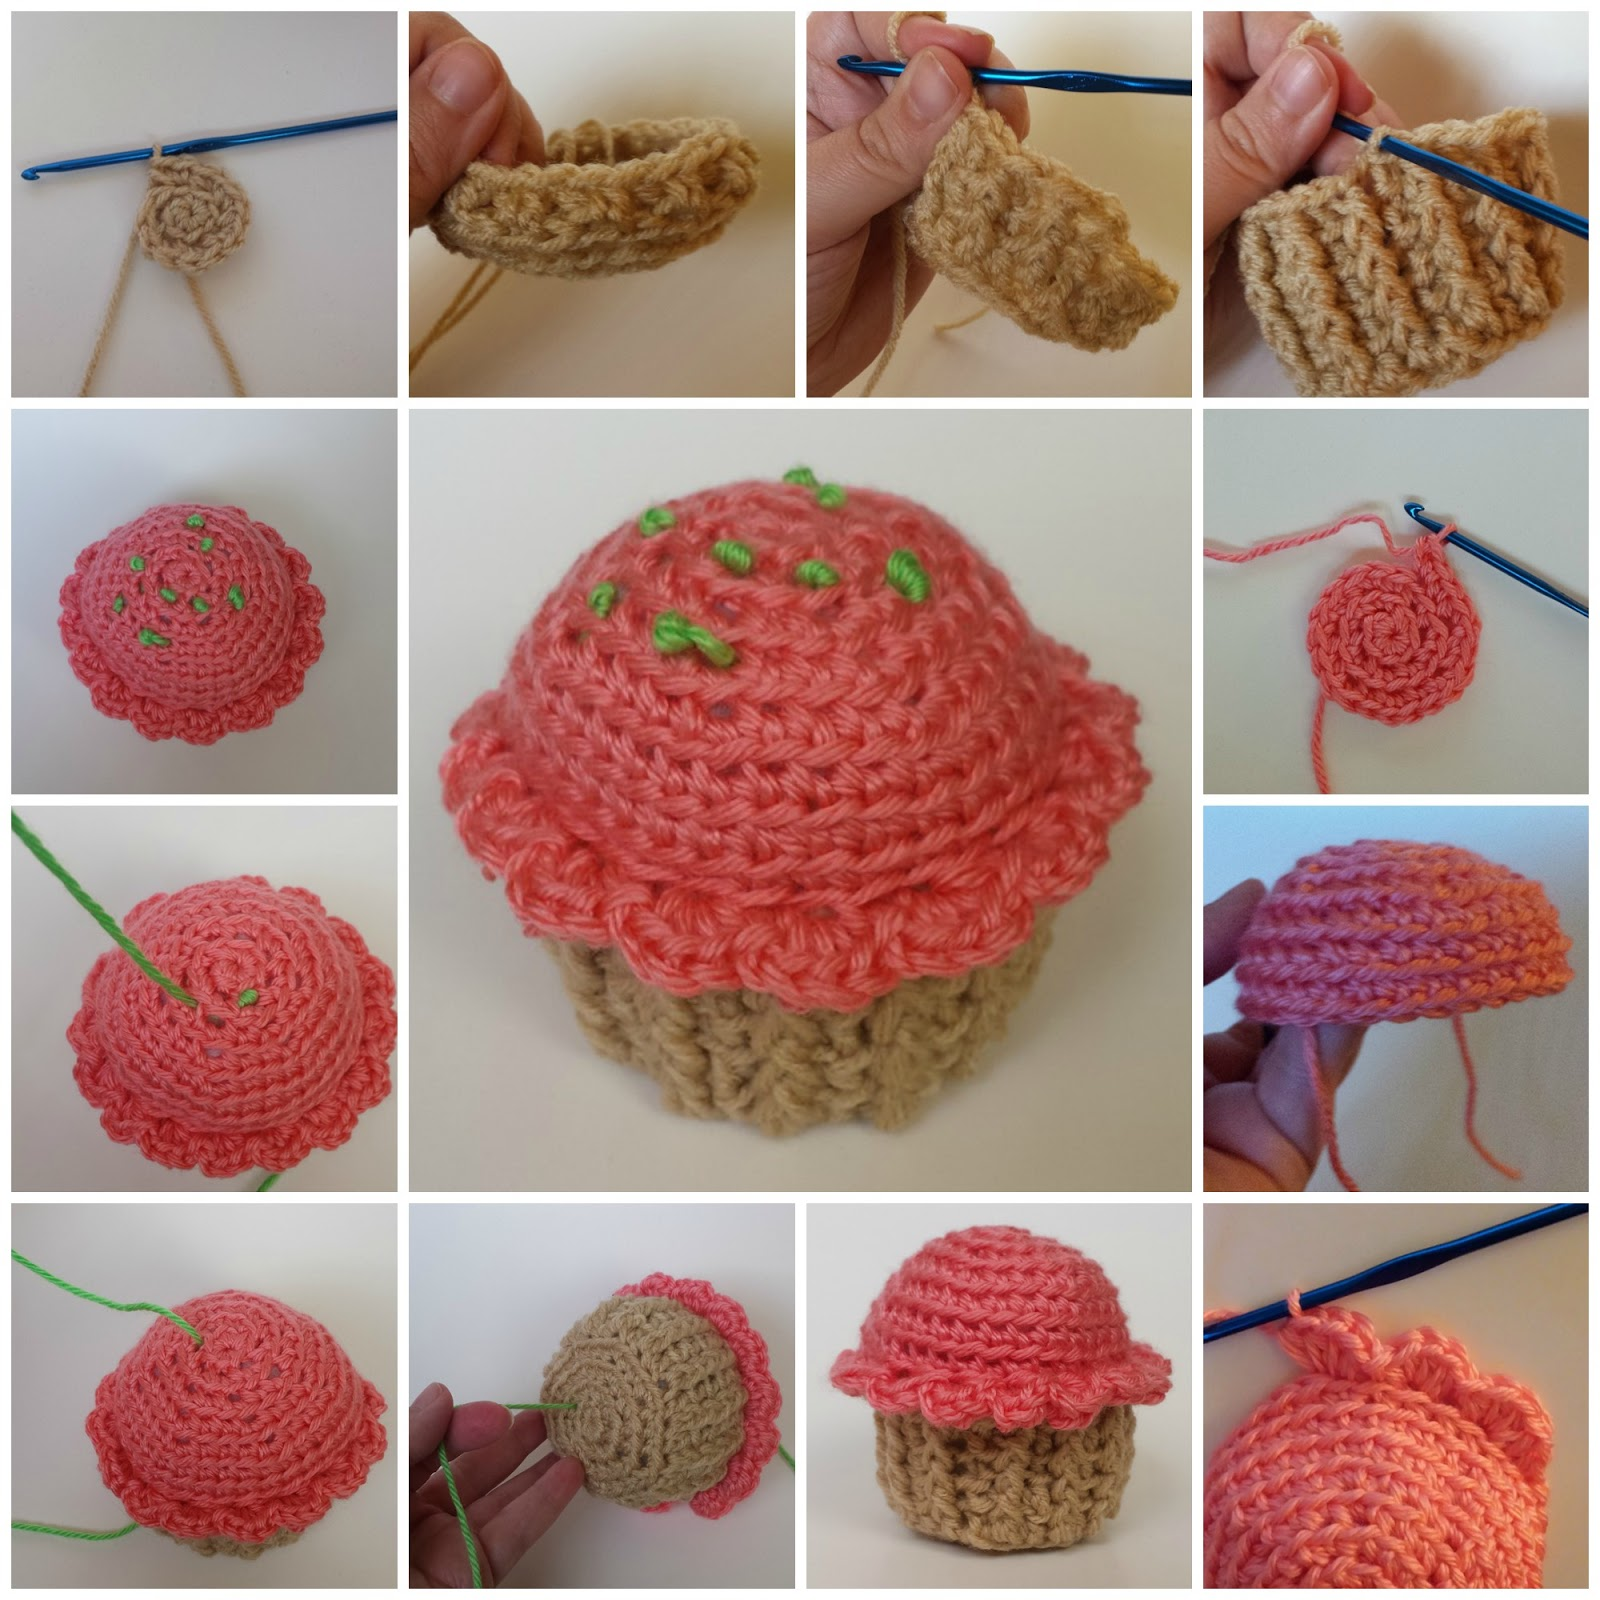 Cutie Cupcake Crochet Pattern Work Up and Review